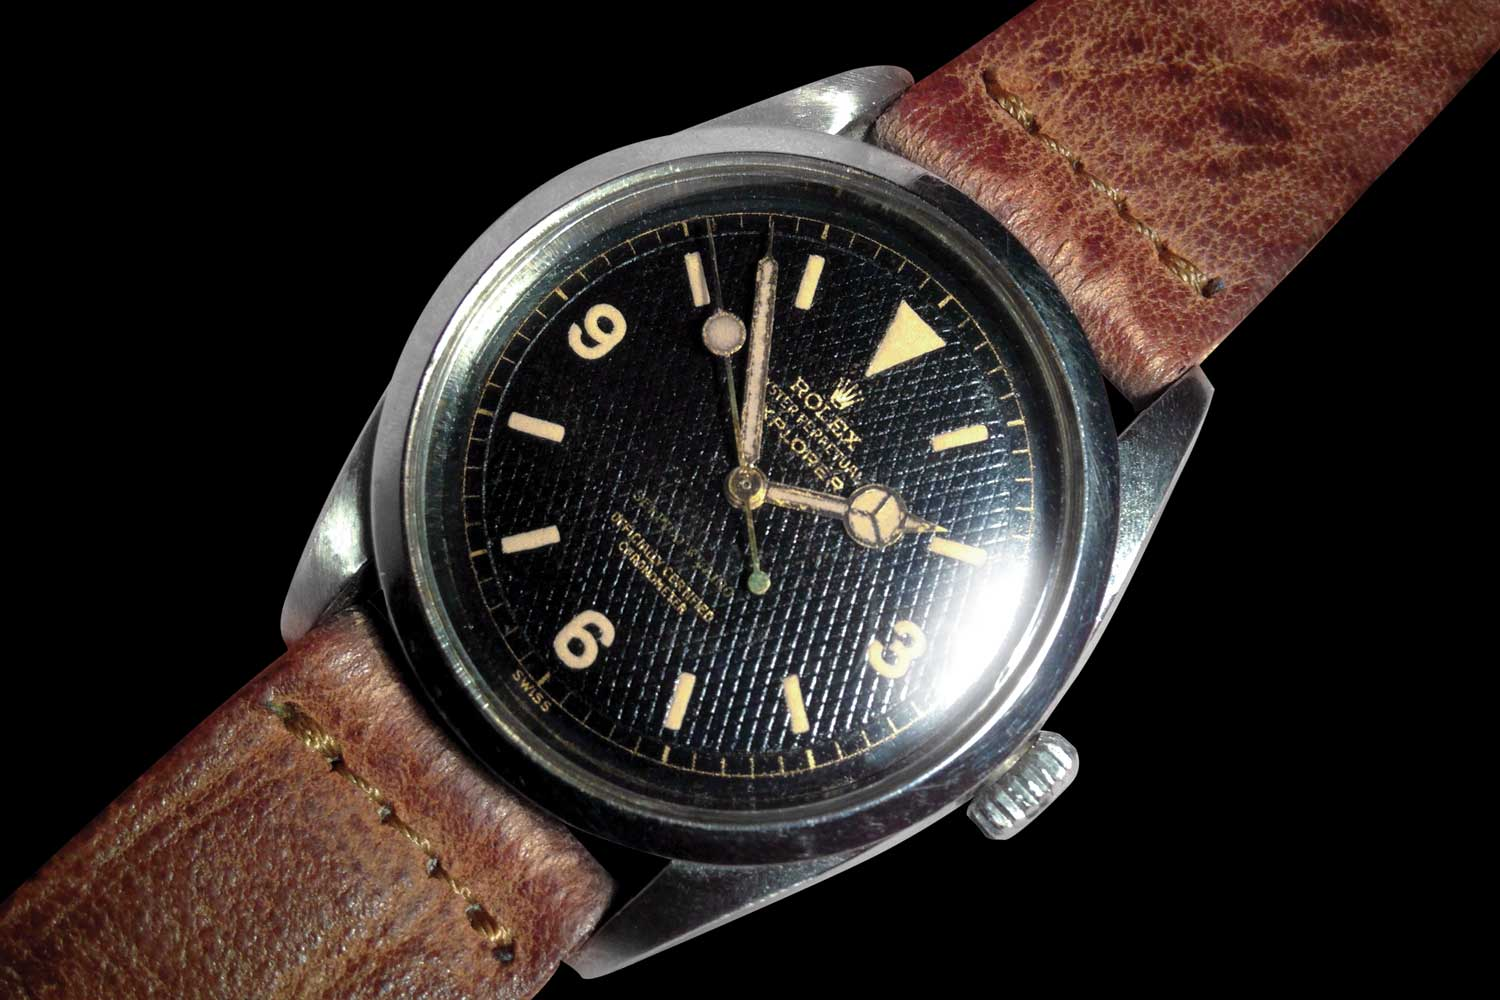 A rare ref. 6350 with honeycomb gilt dial customised for Serpico Y Laino, a Rolex retailer in Caracas, Venezuela